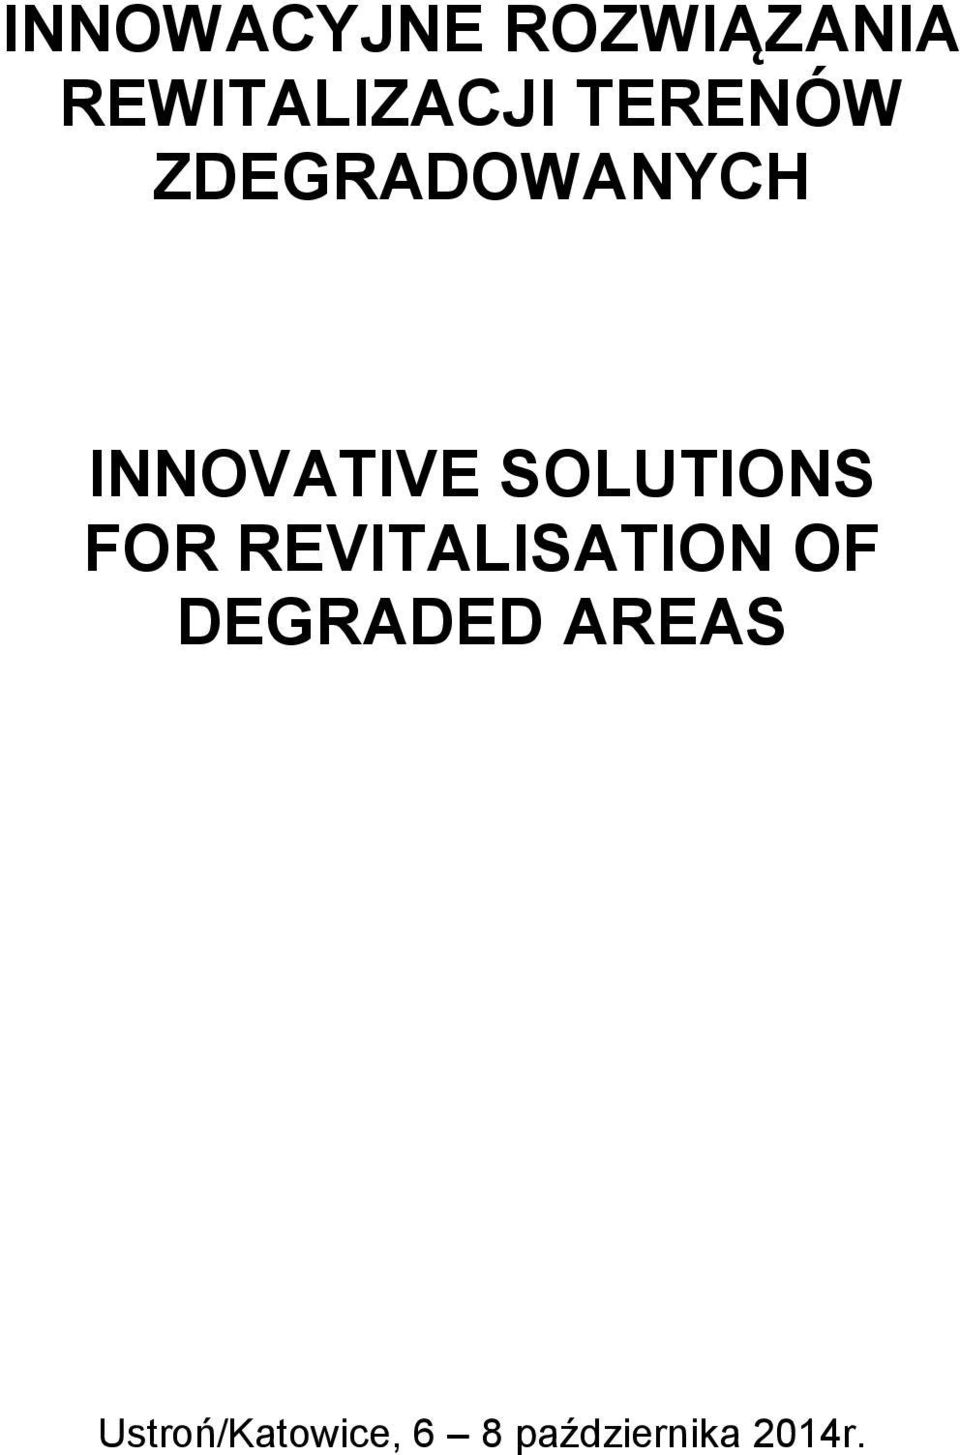 SOLUTIONS FOR REVITALISATION OF